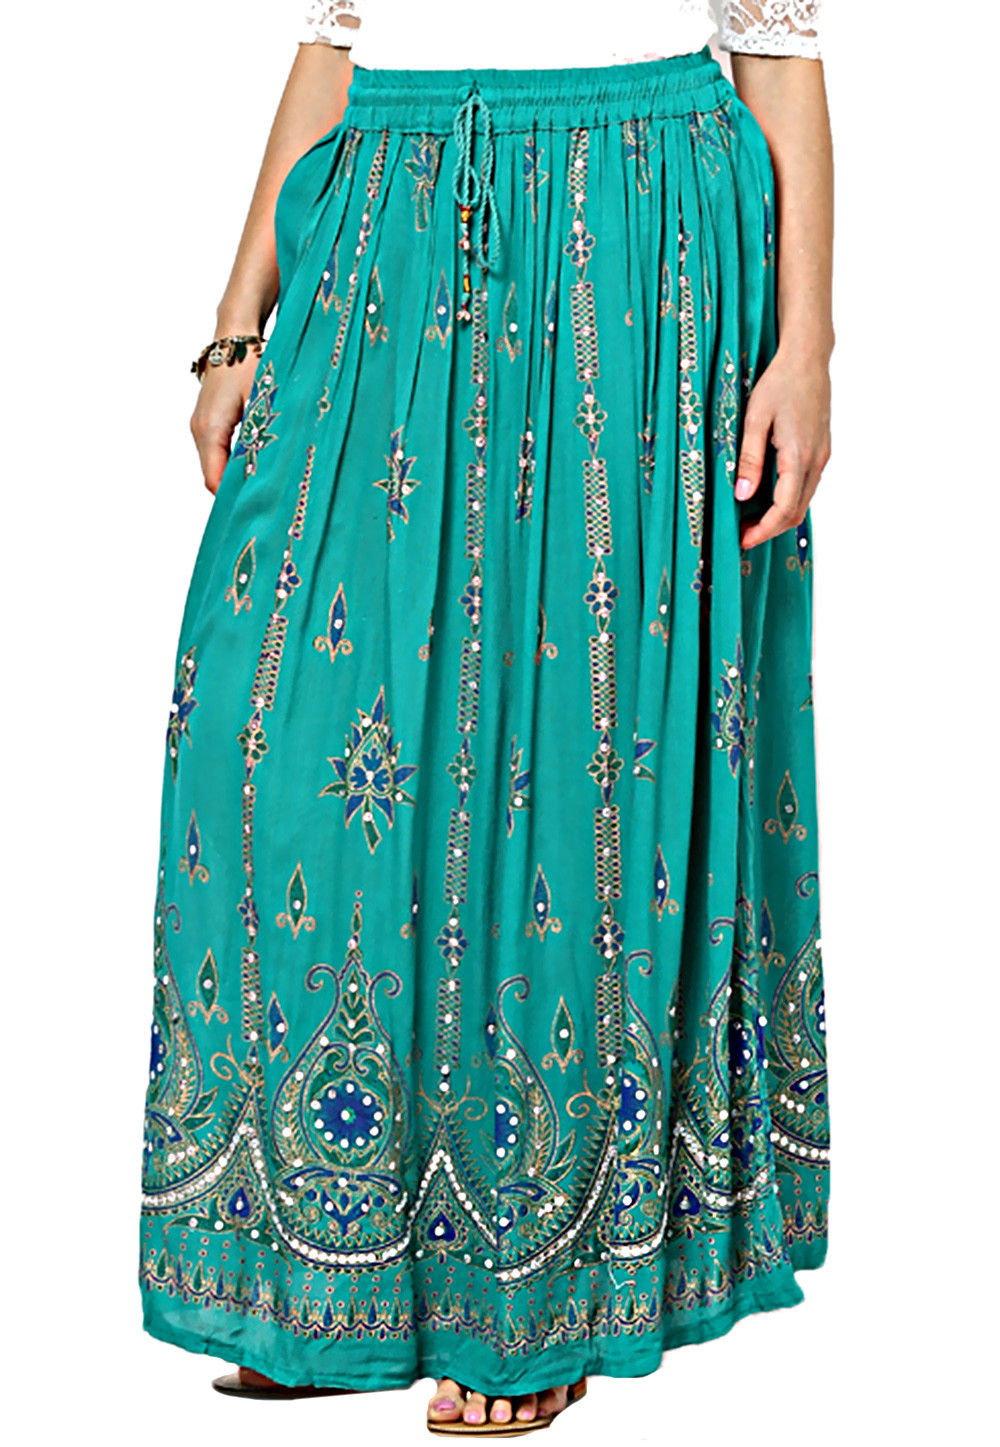 Cotton Readymade Long Skirt in Teal Blue